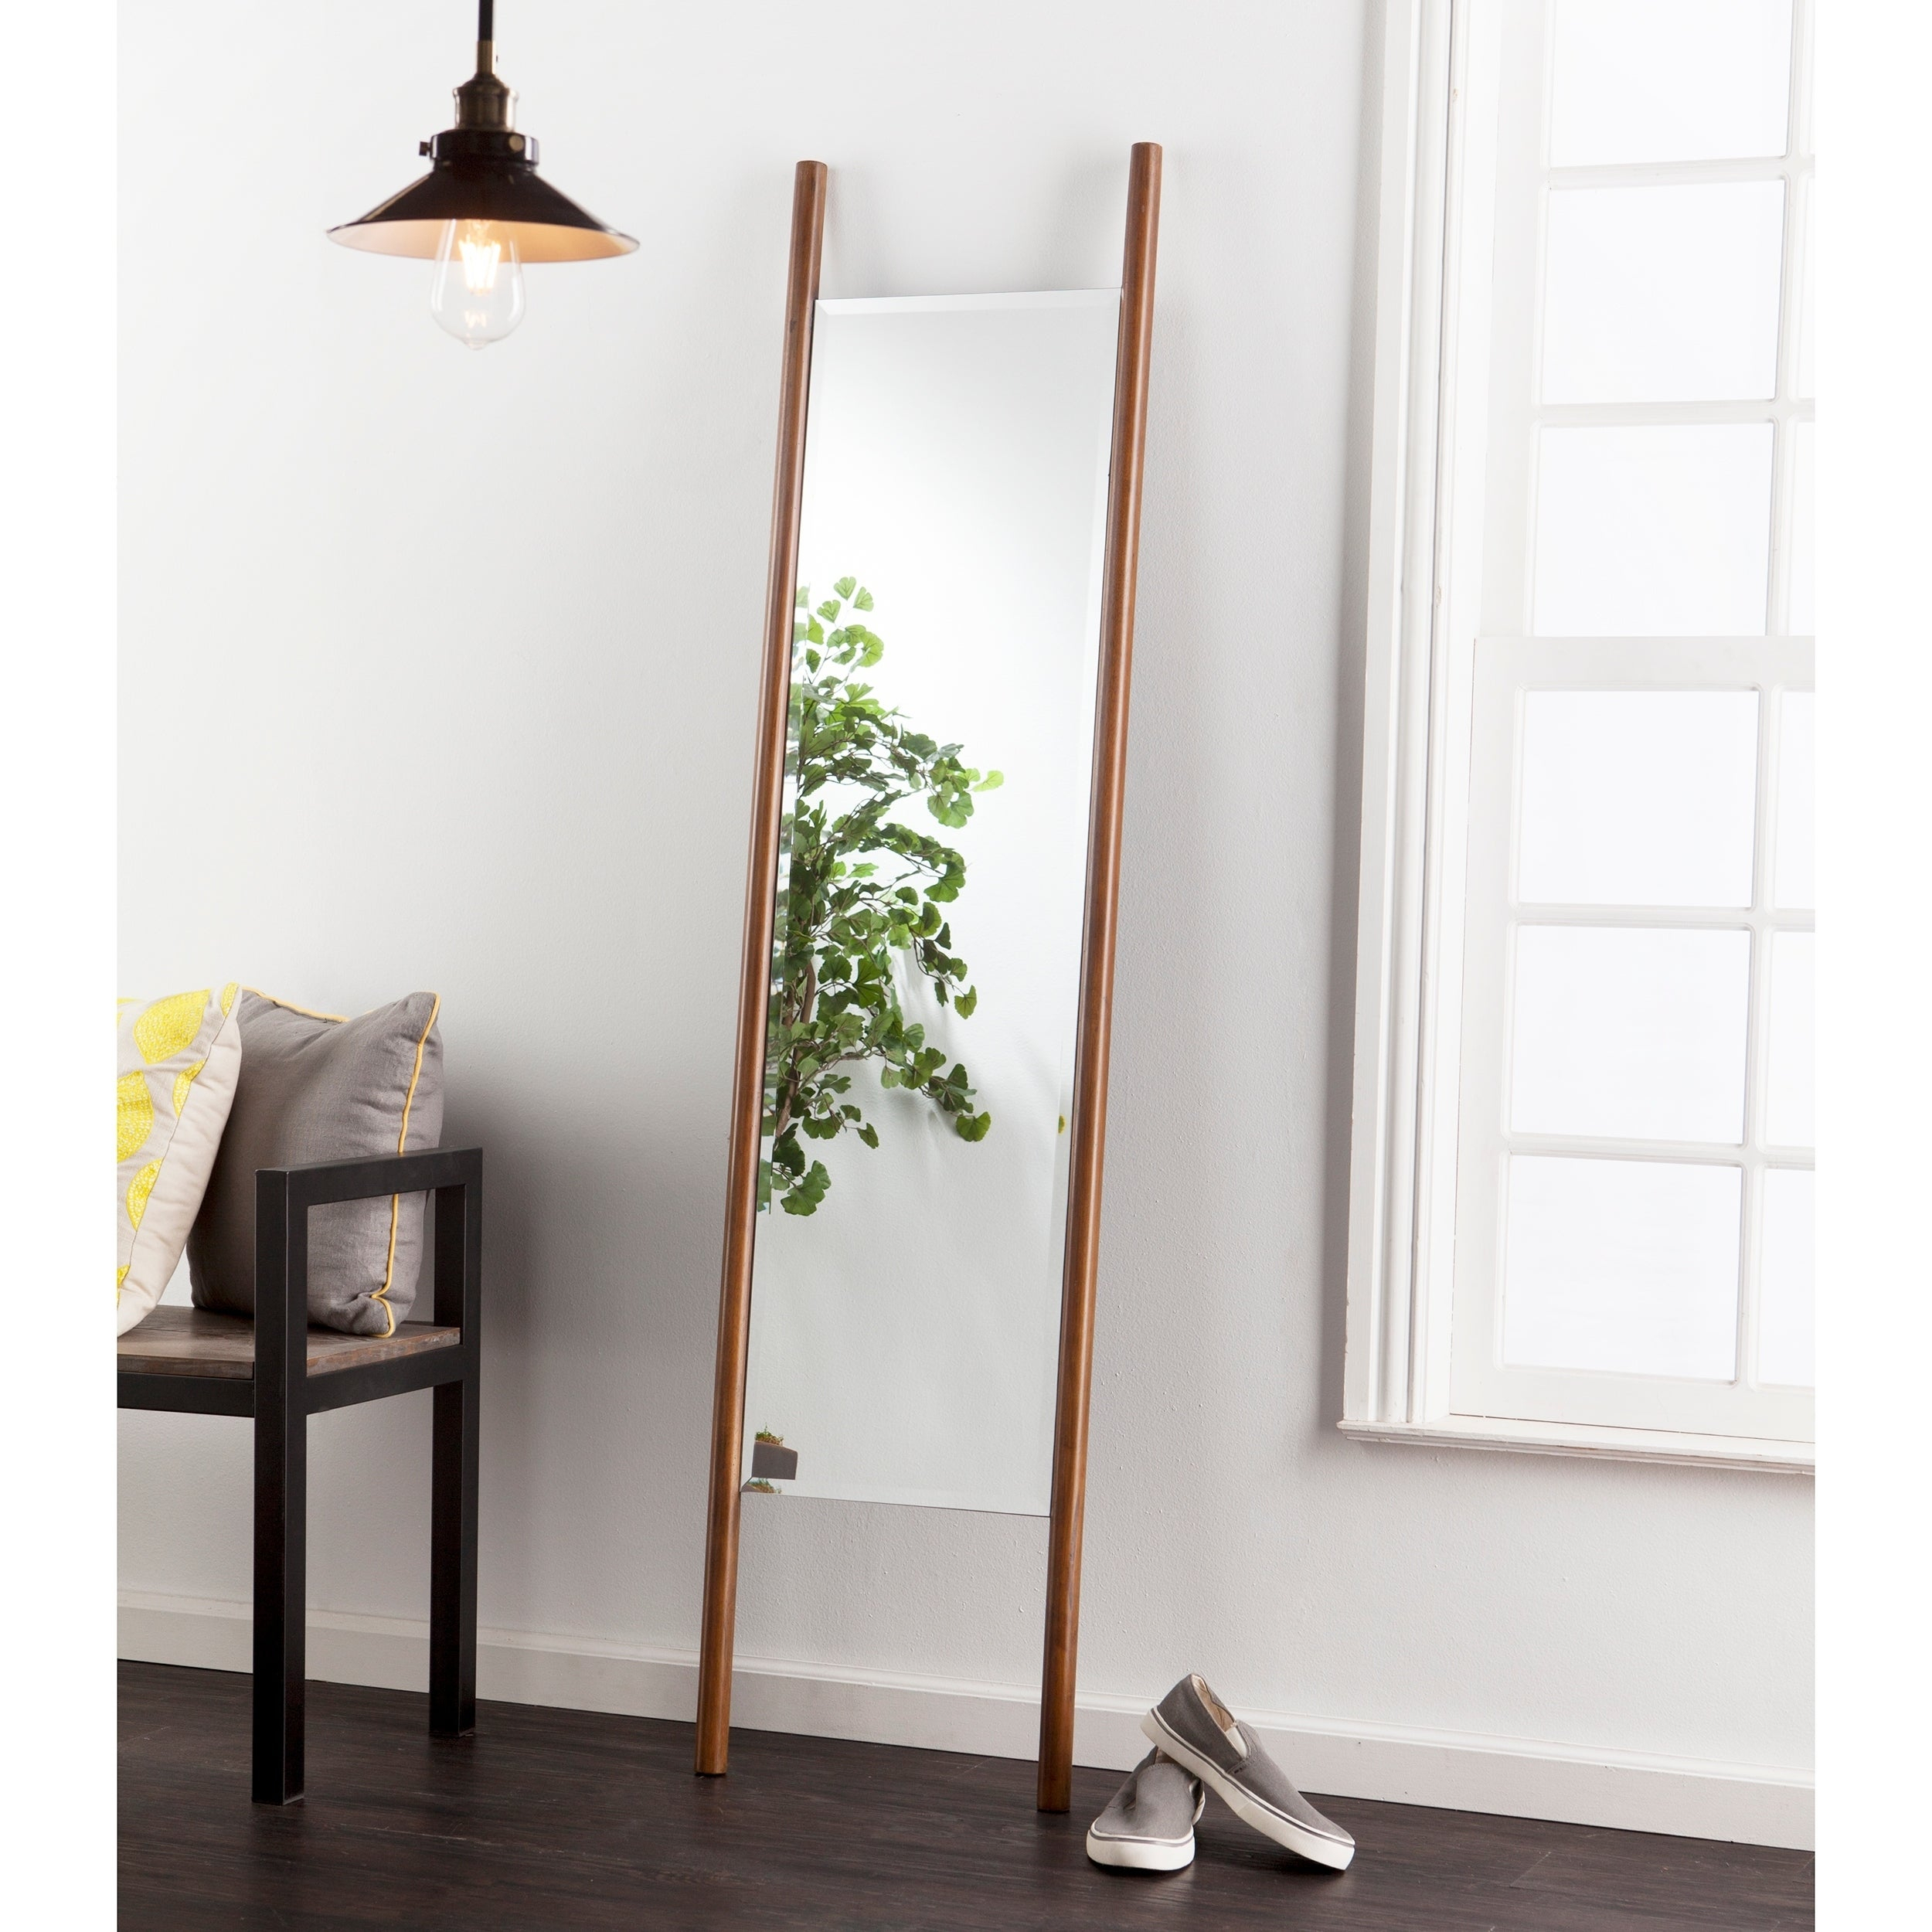 Holly & Martin Swain Leaning Mirror – Dark Tobacco – Dark Tobacco For Leaning Mirrors (View 8 of 30)